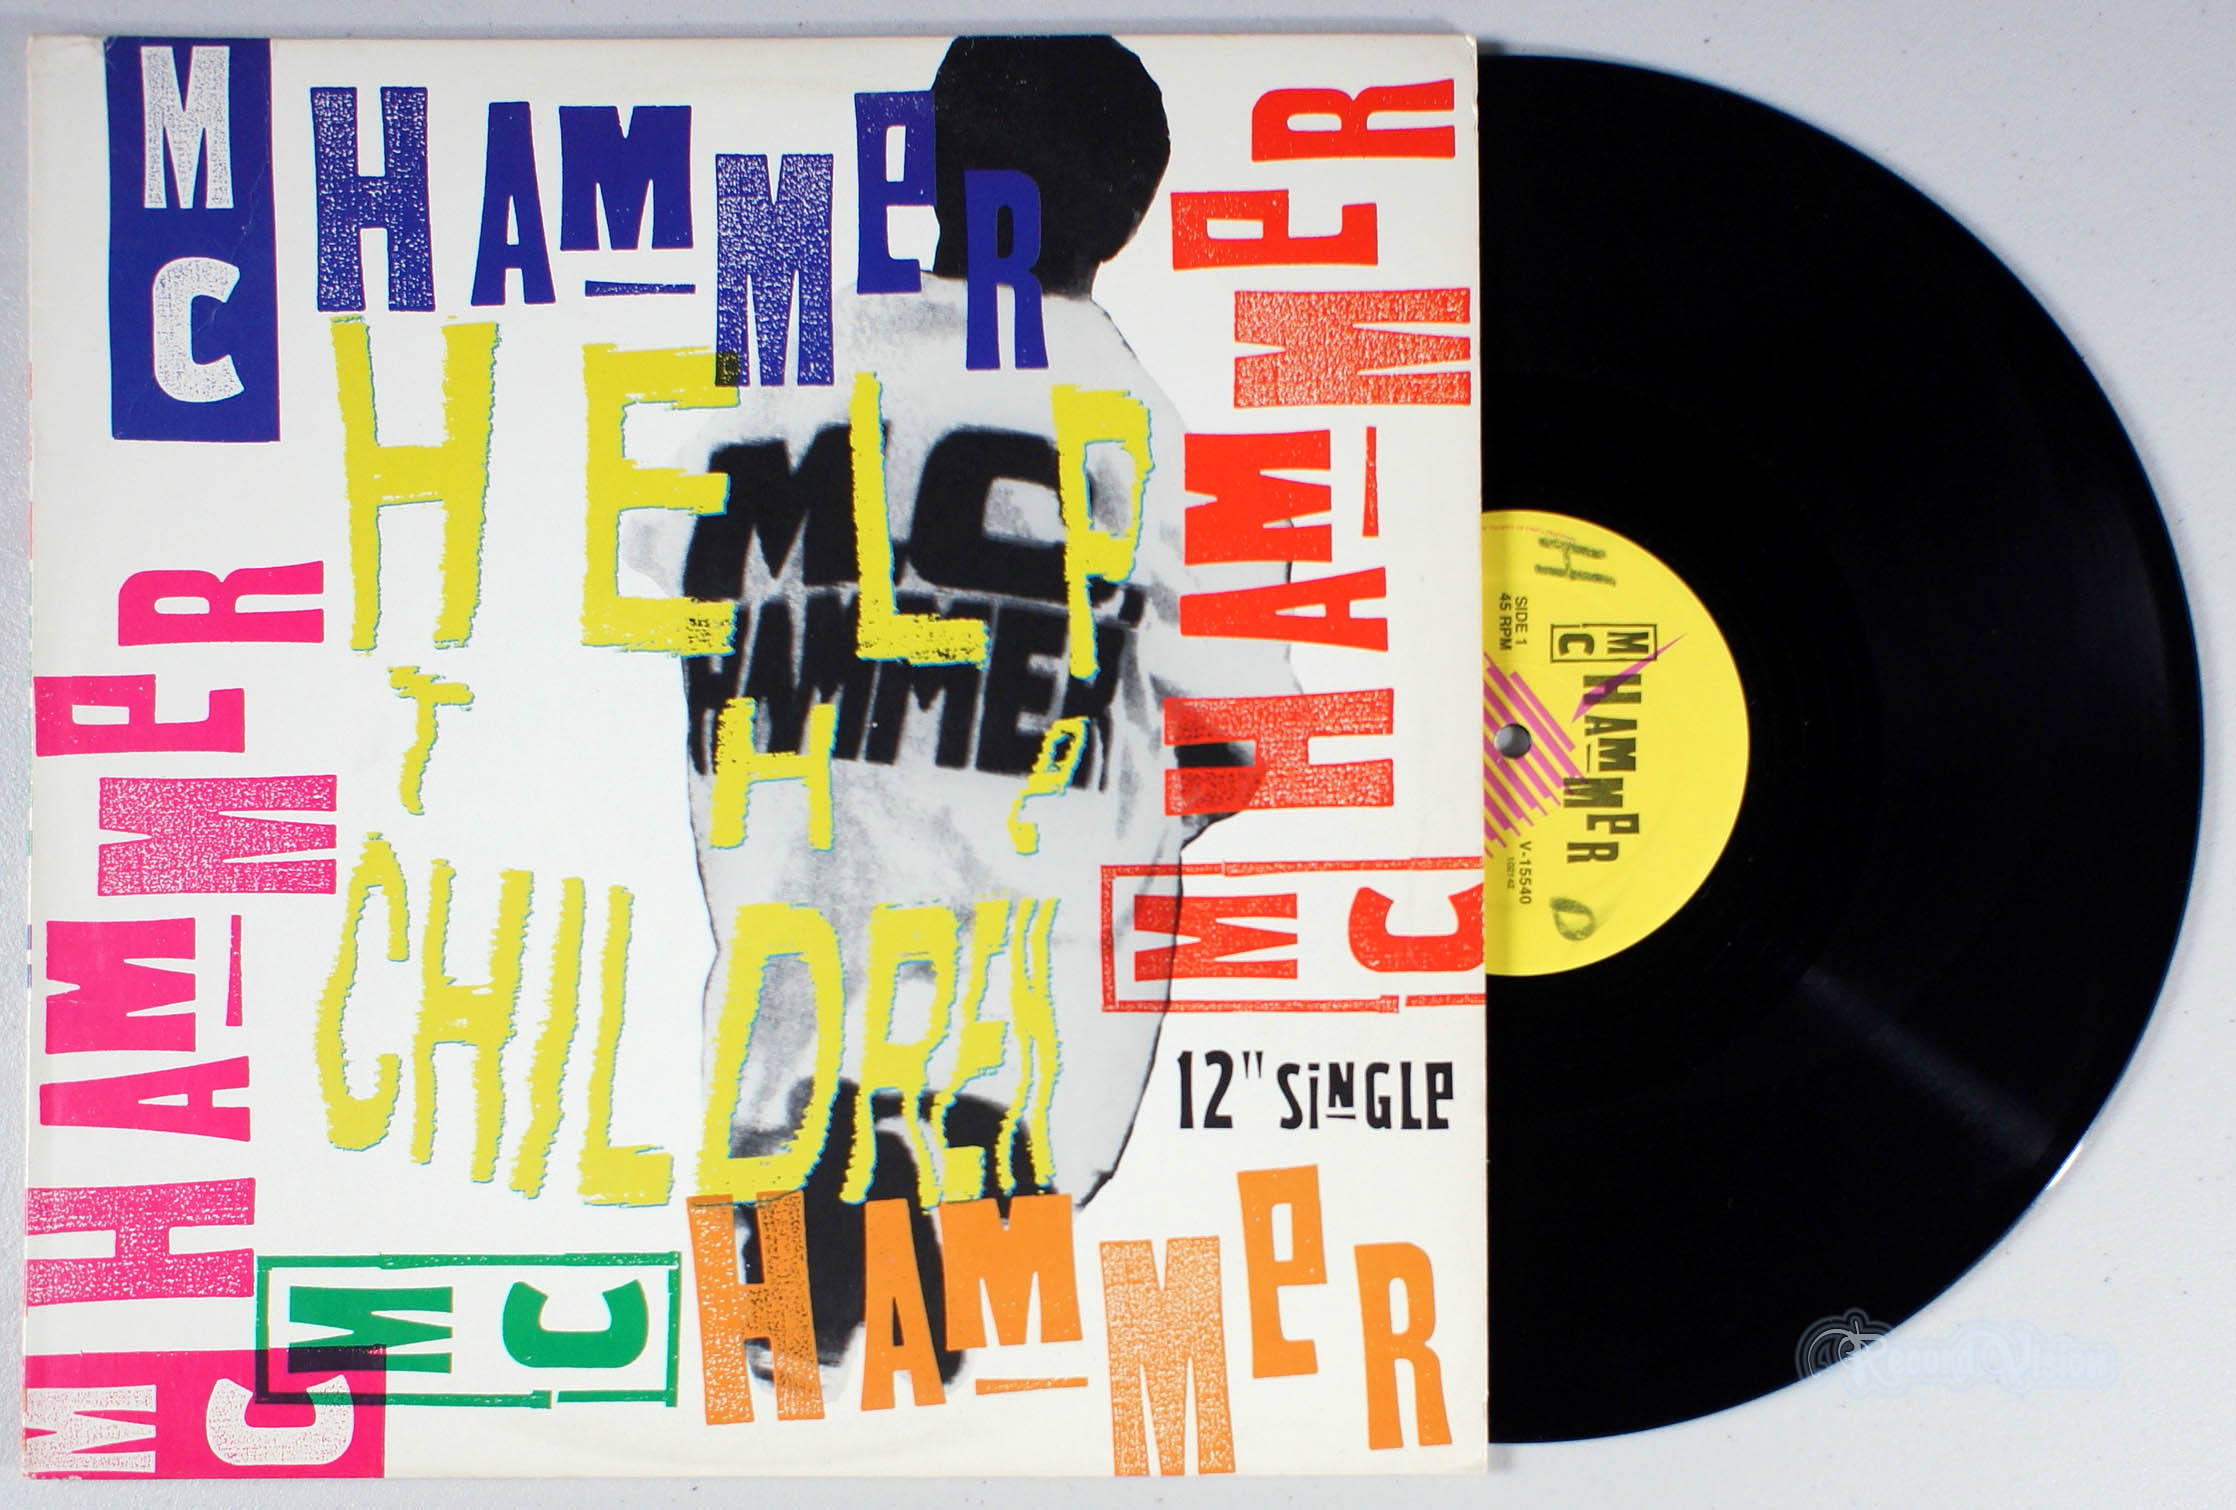 MC HAMMER - Help the Children - 12 inch x 1